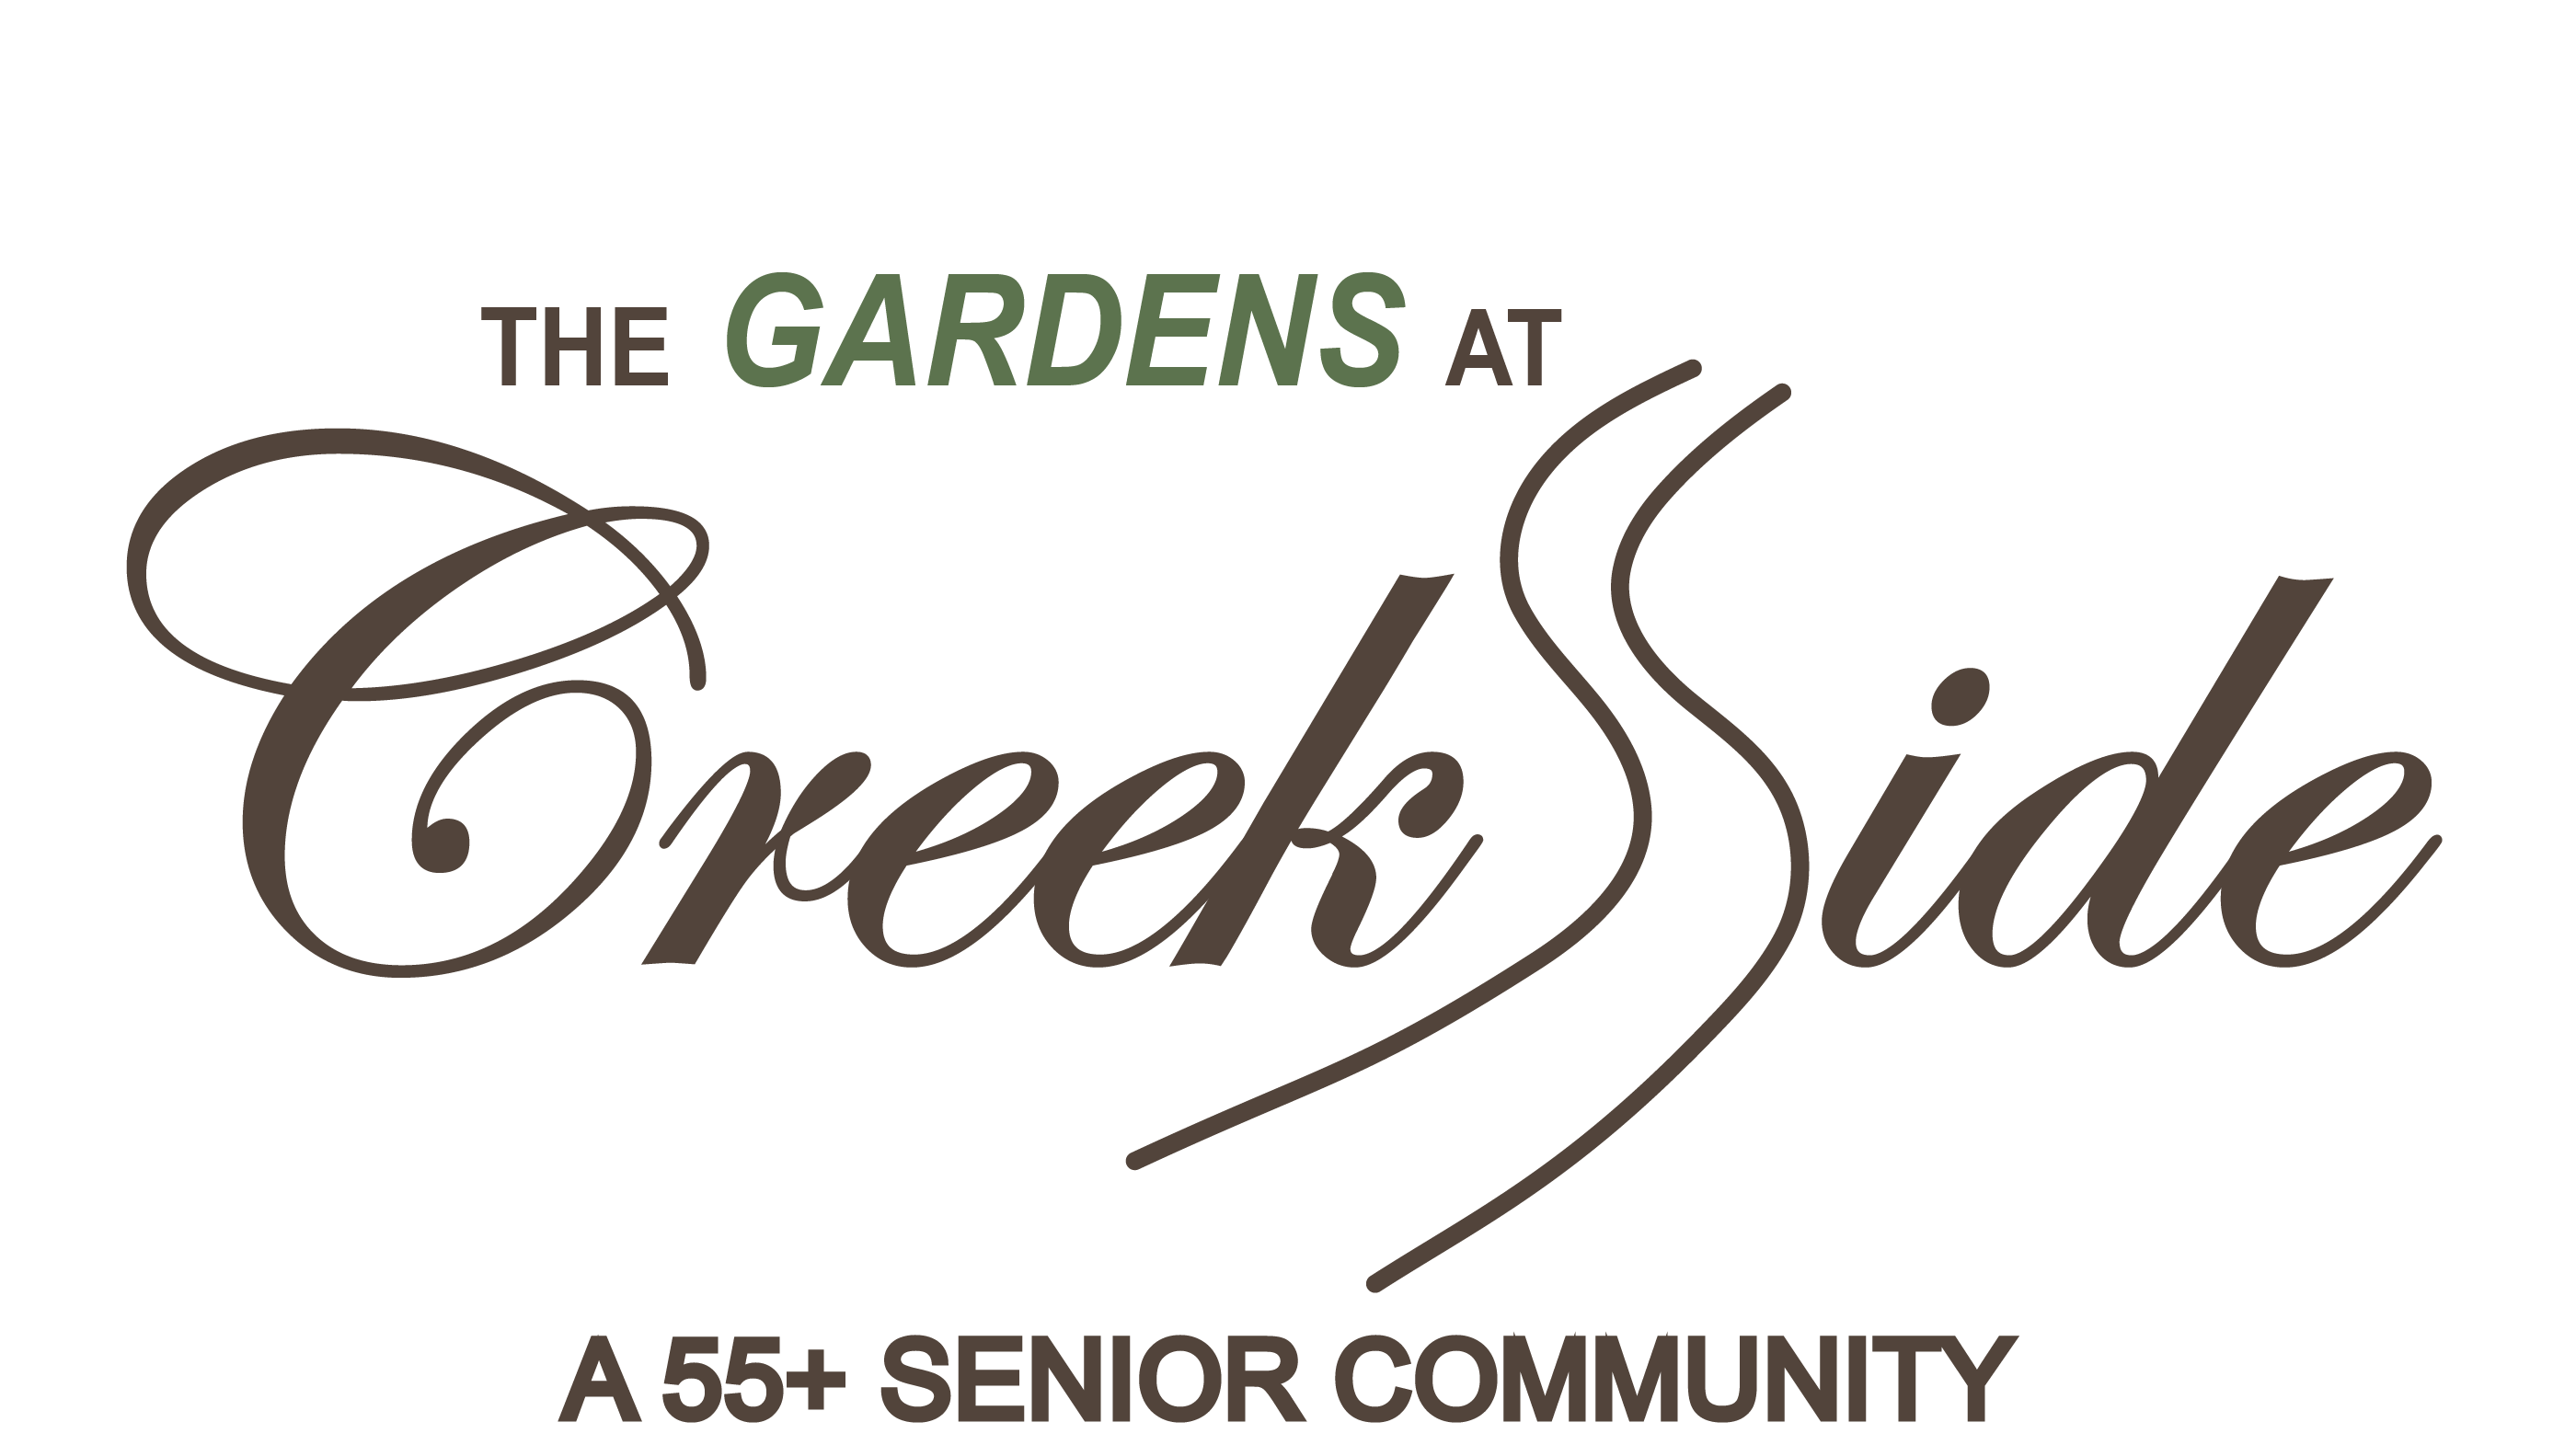 The Gardens at Creekside Logo